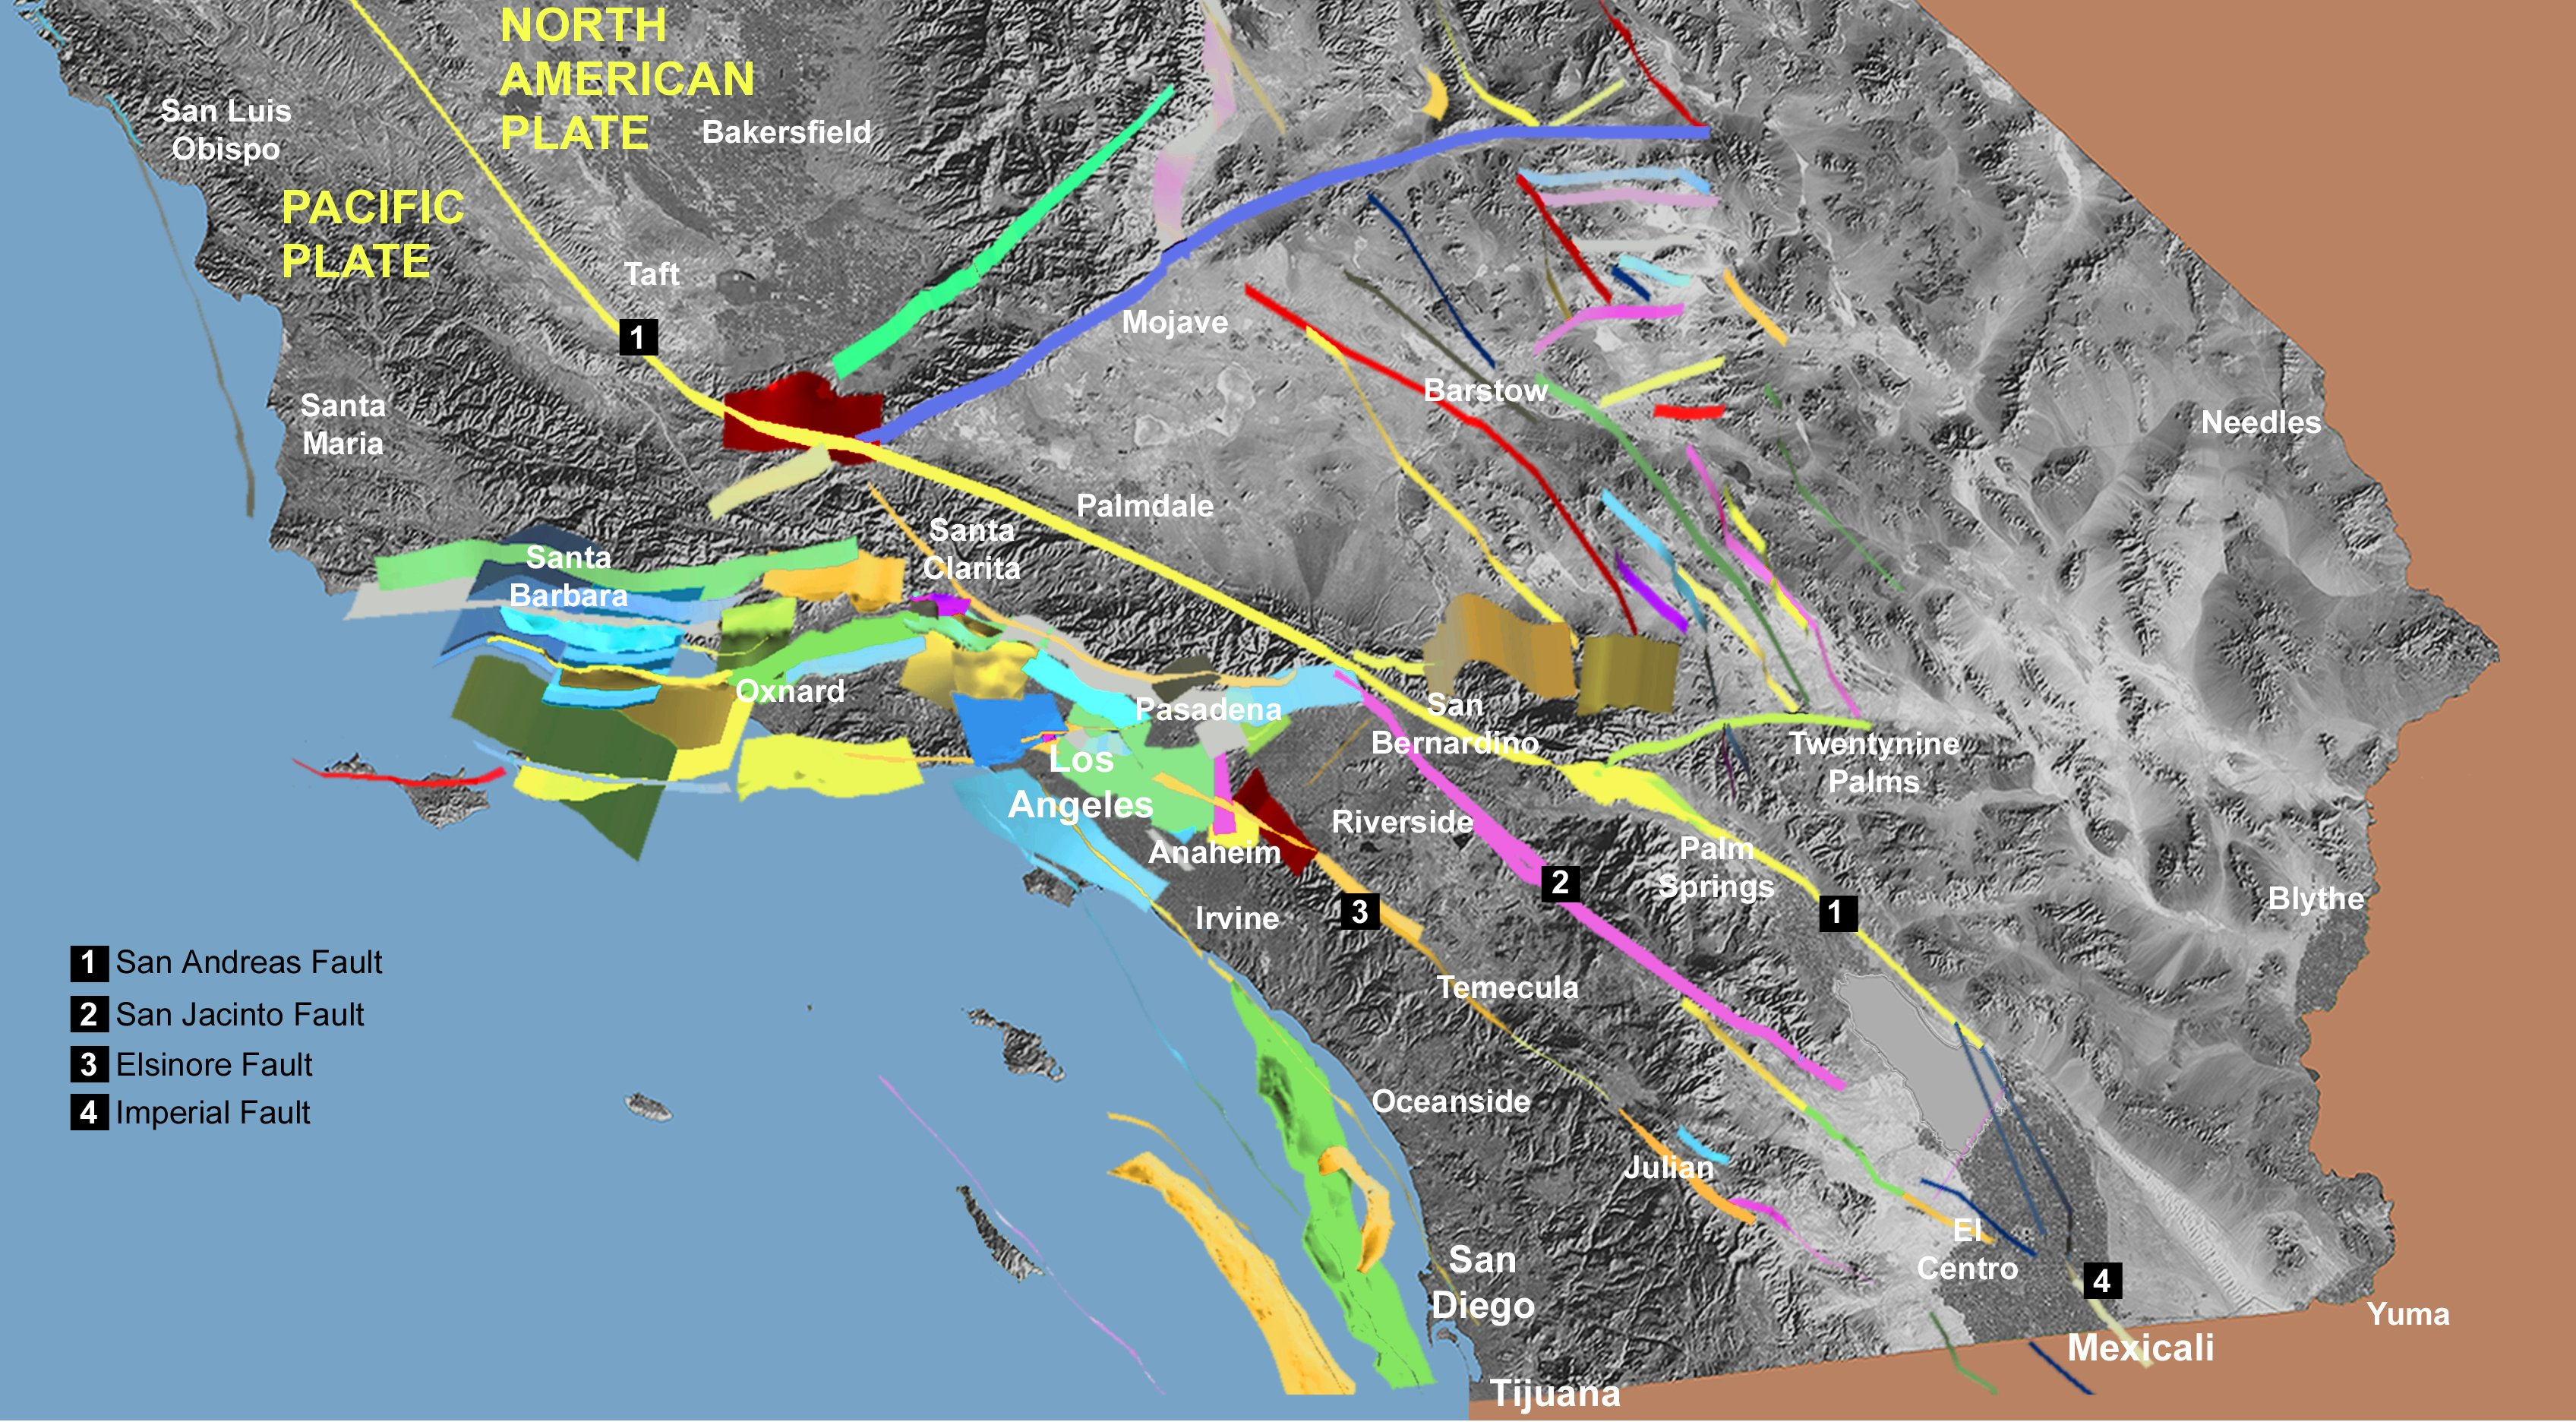 Fault off San Diego, Orange, Los Angeles counties could produce 7.3 earthquake